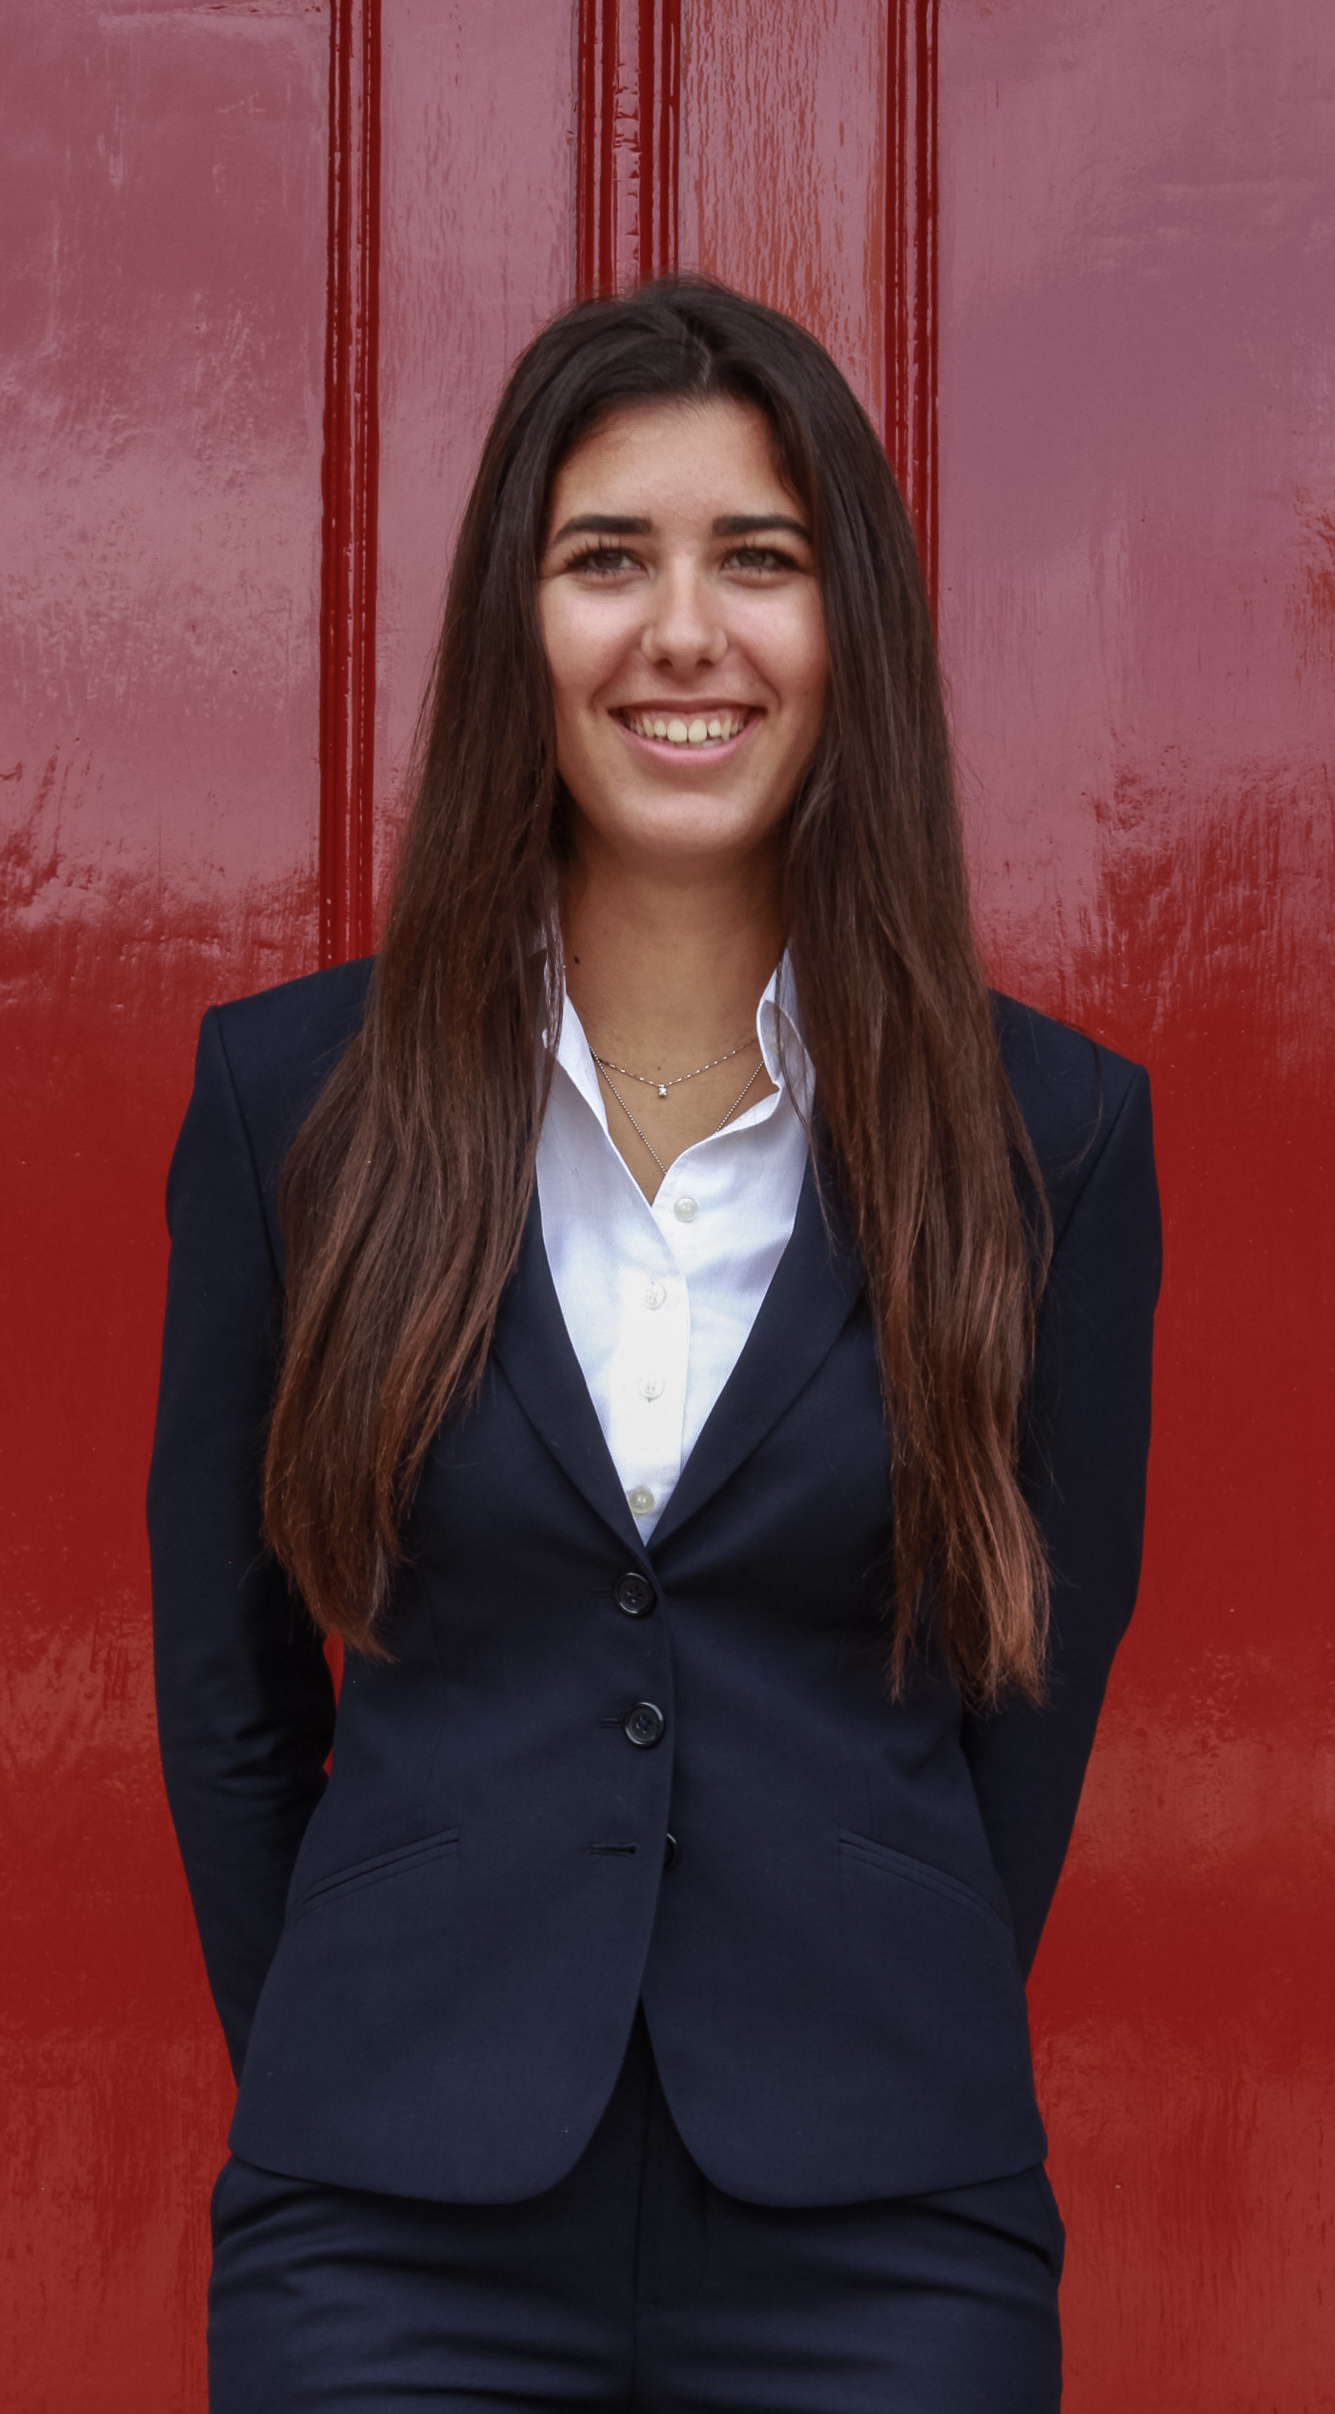 Silvia Santarsiero - Secretary/Coordinator of Internal Affairs